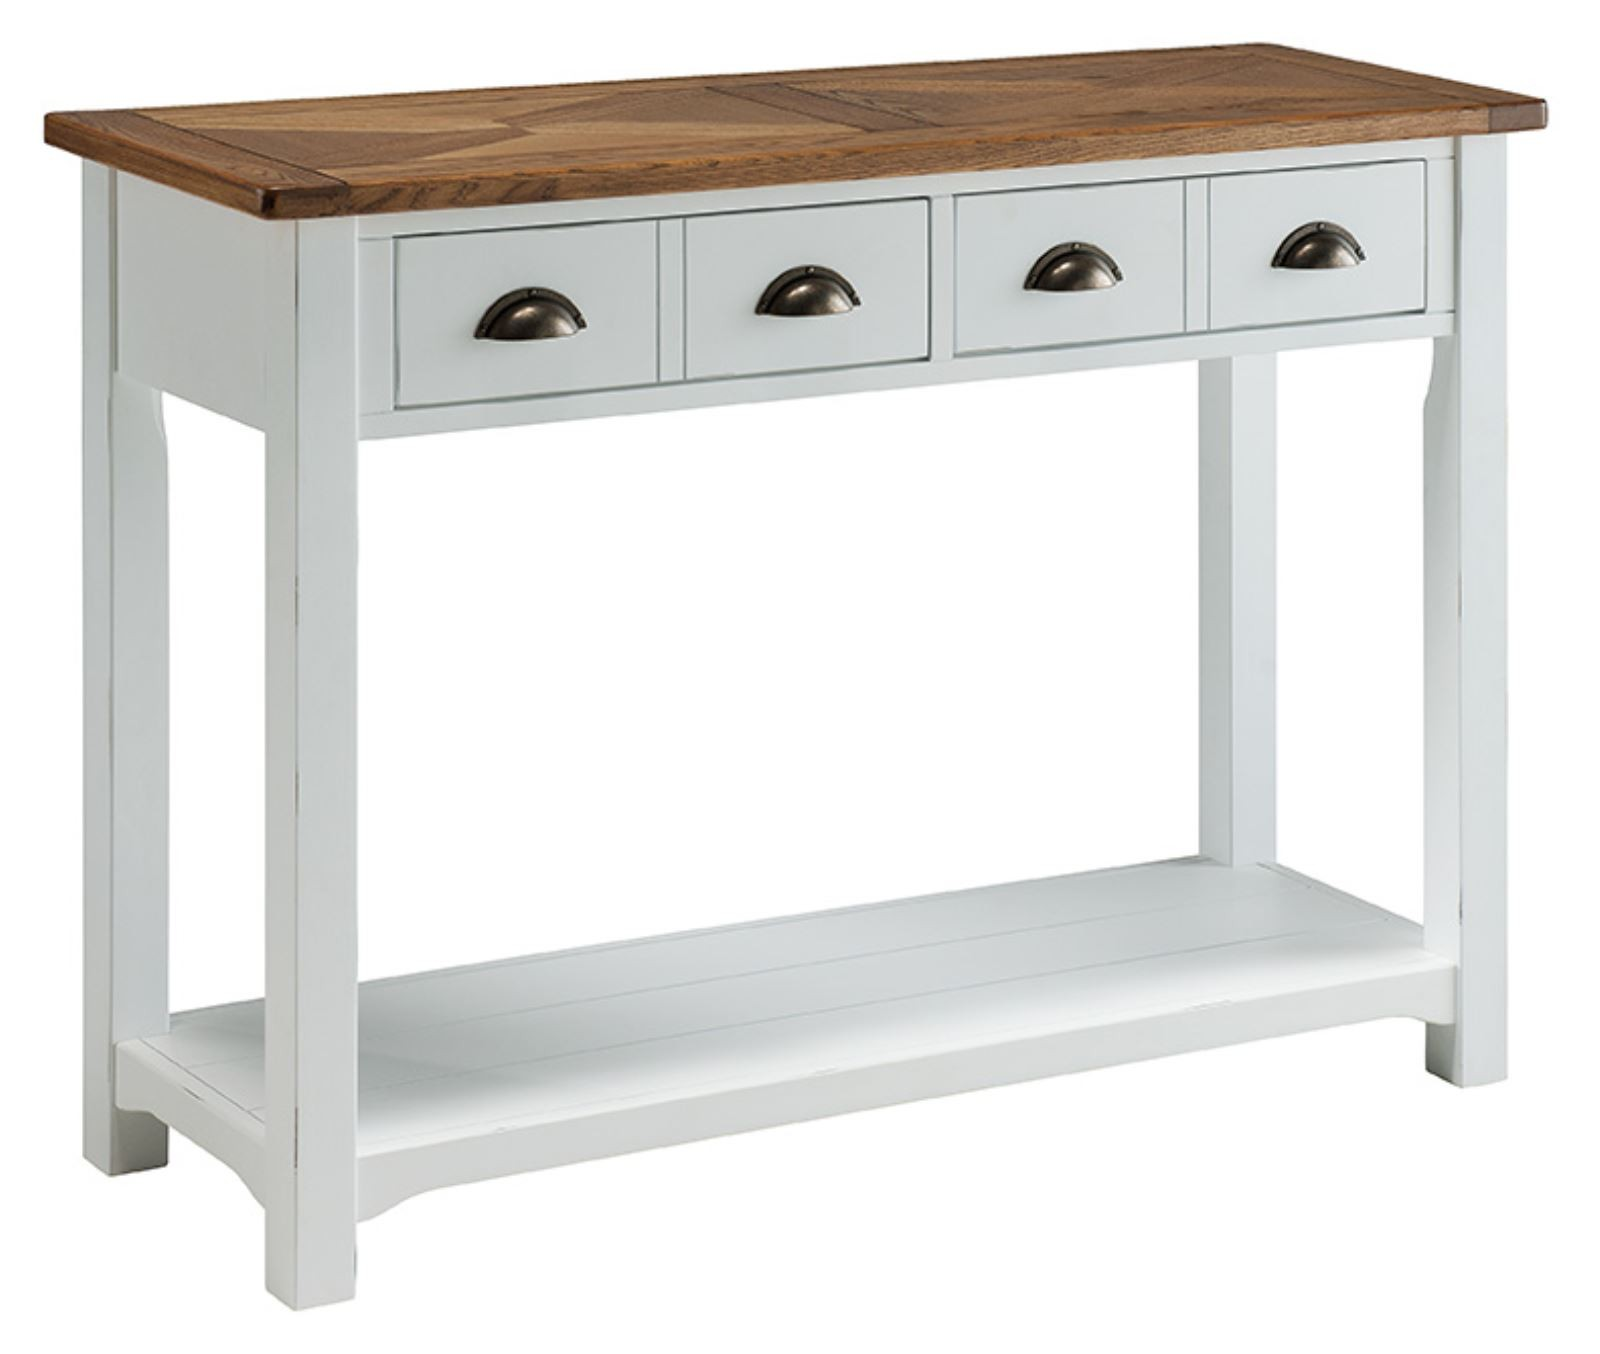 Porto painted white reclaimed pine chunky style console table